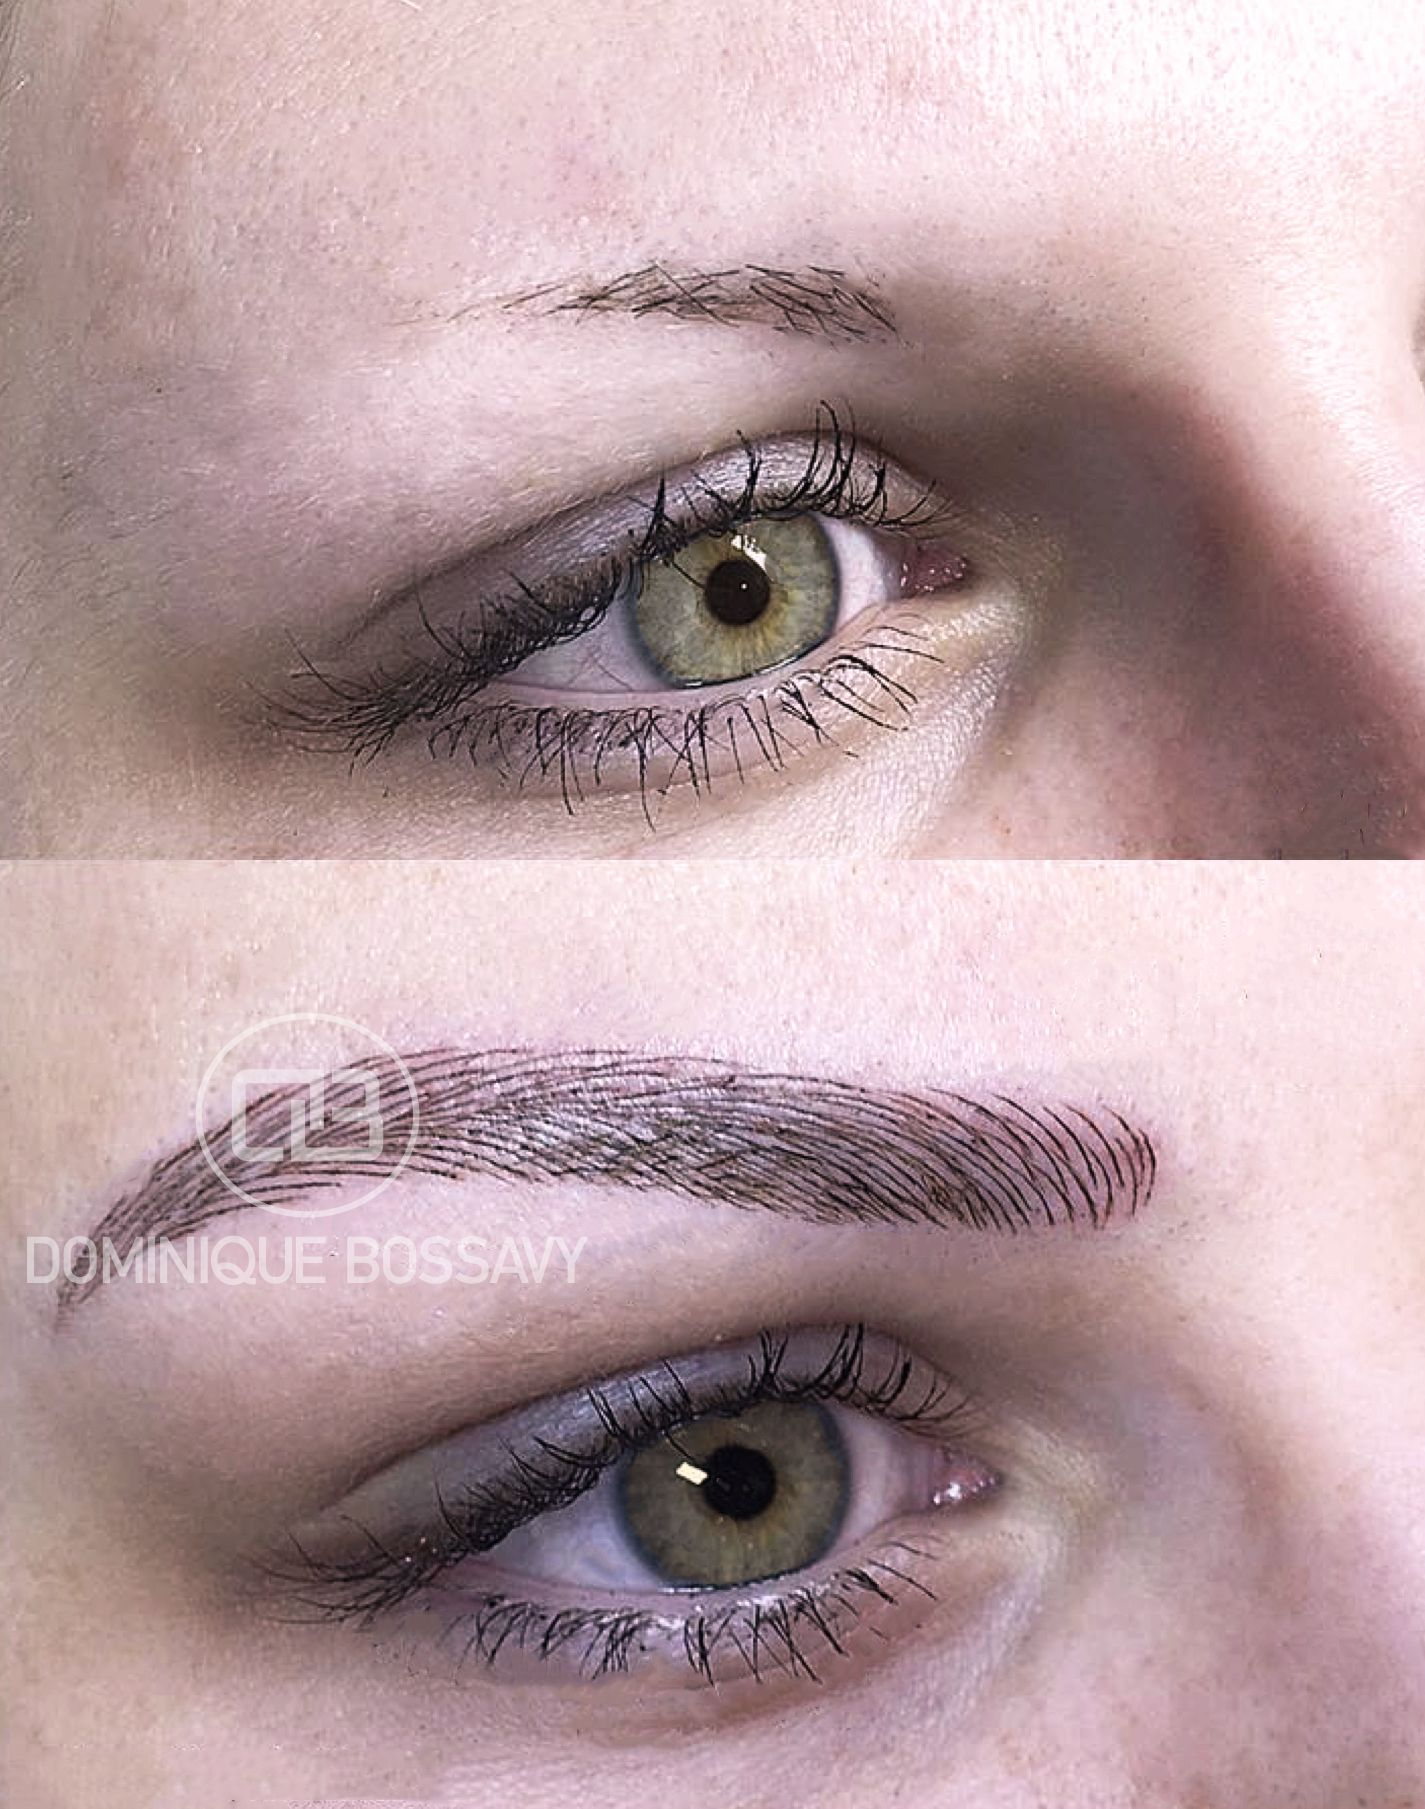 Before/After Eyebrows - Micro Color Infusion treatment of Dominique Bossavy, Permanent makeup Artist.